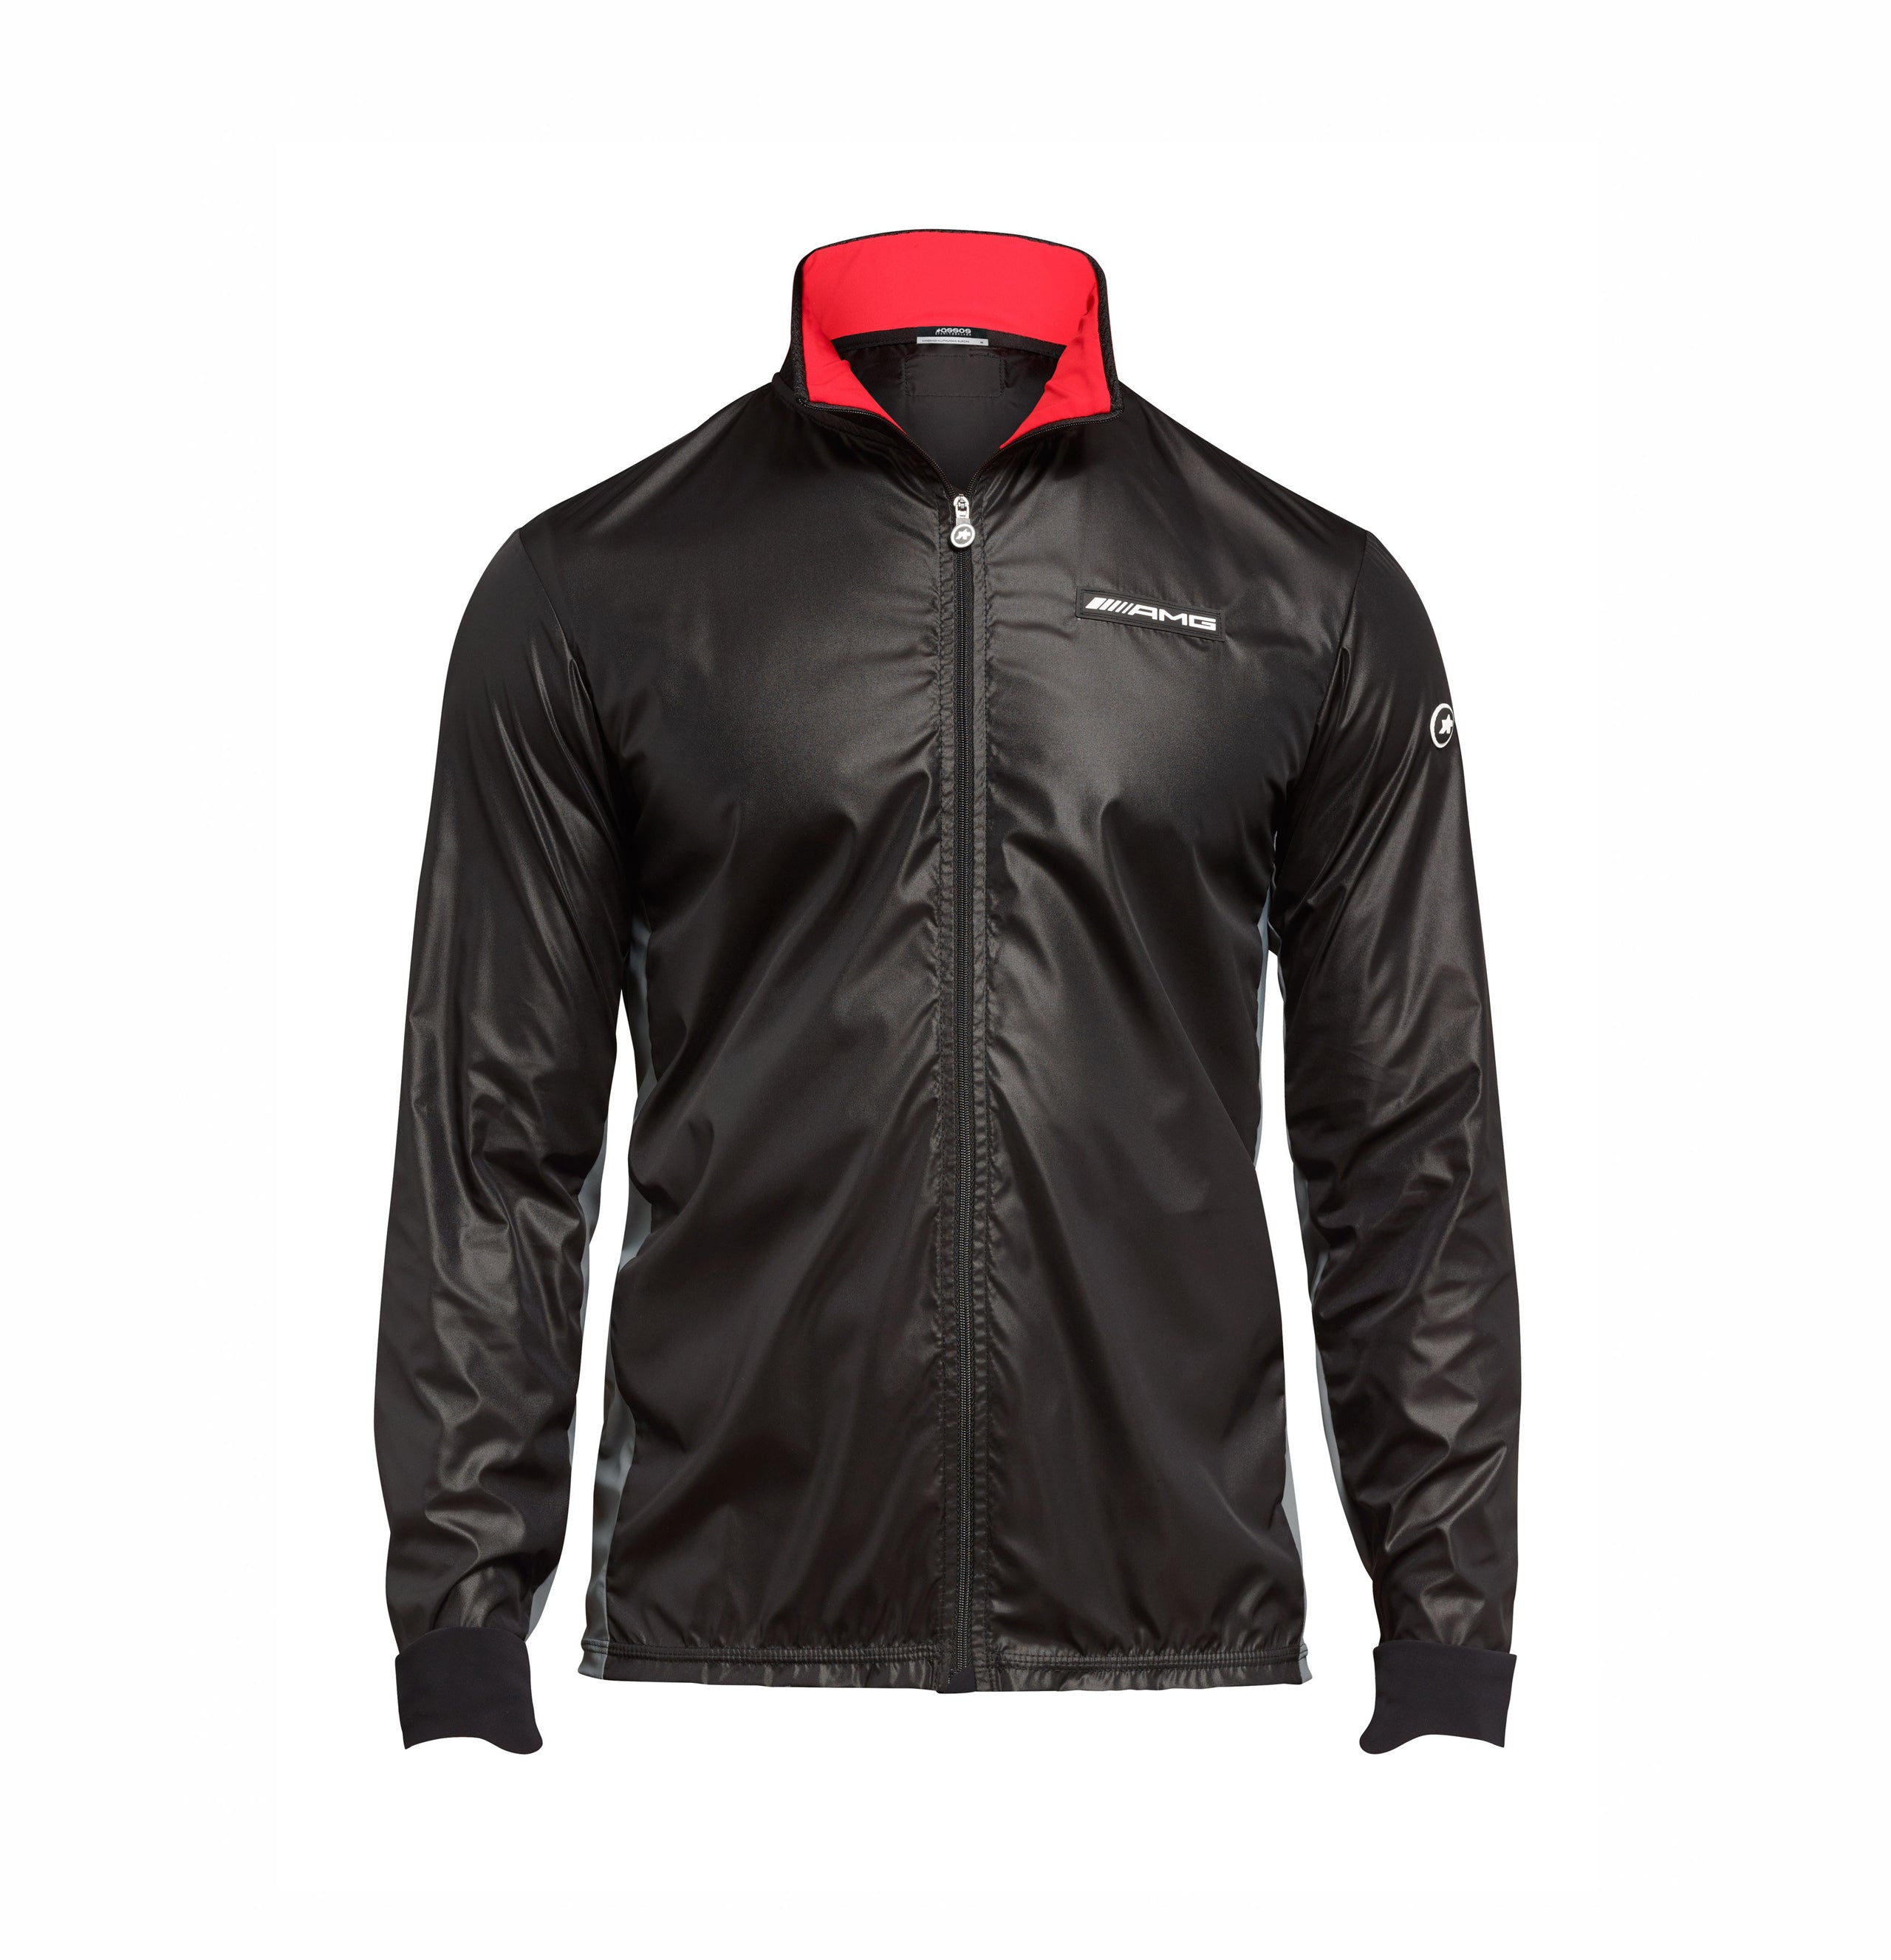 AMG WINDJACKET